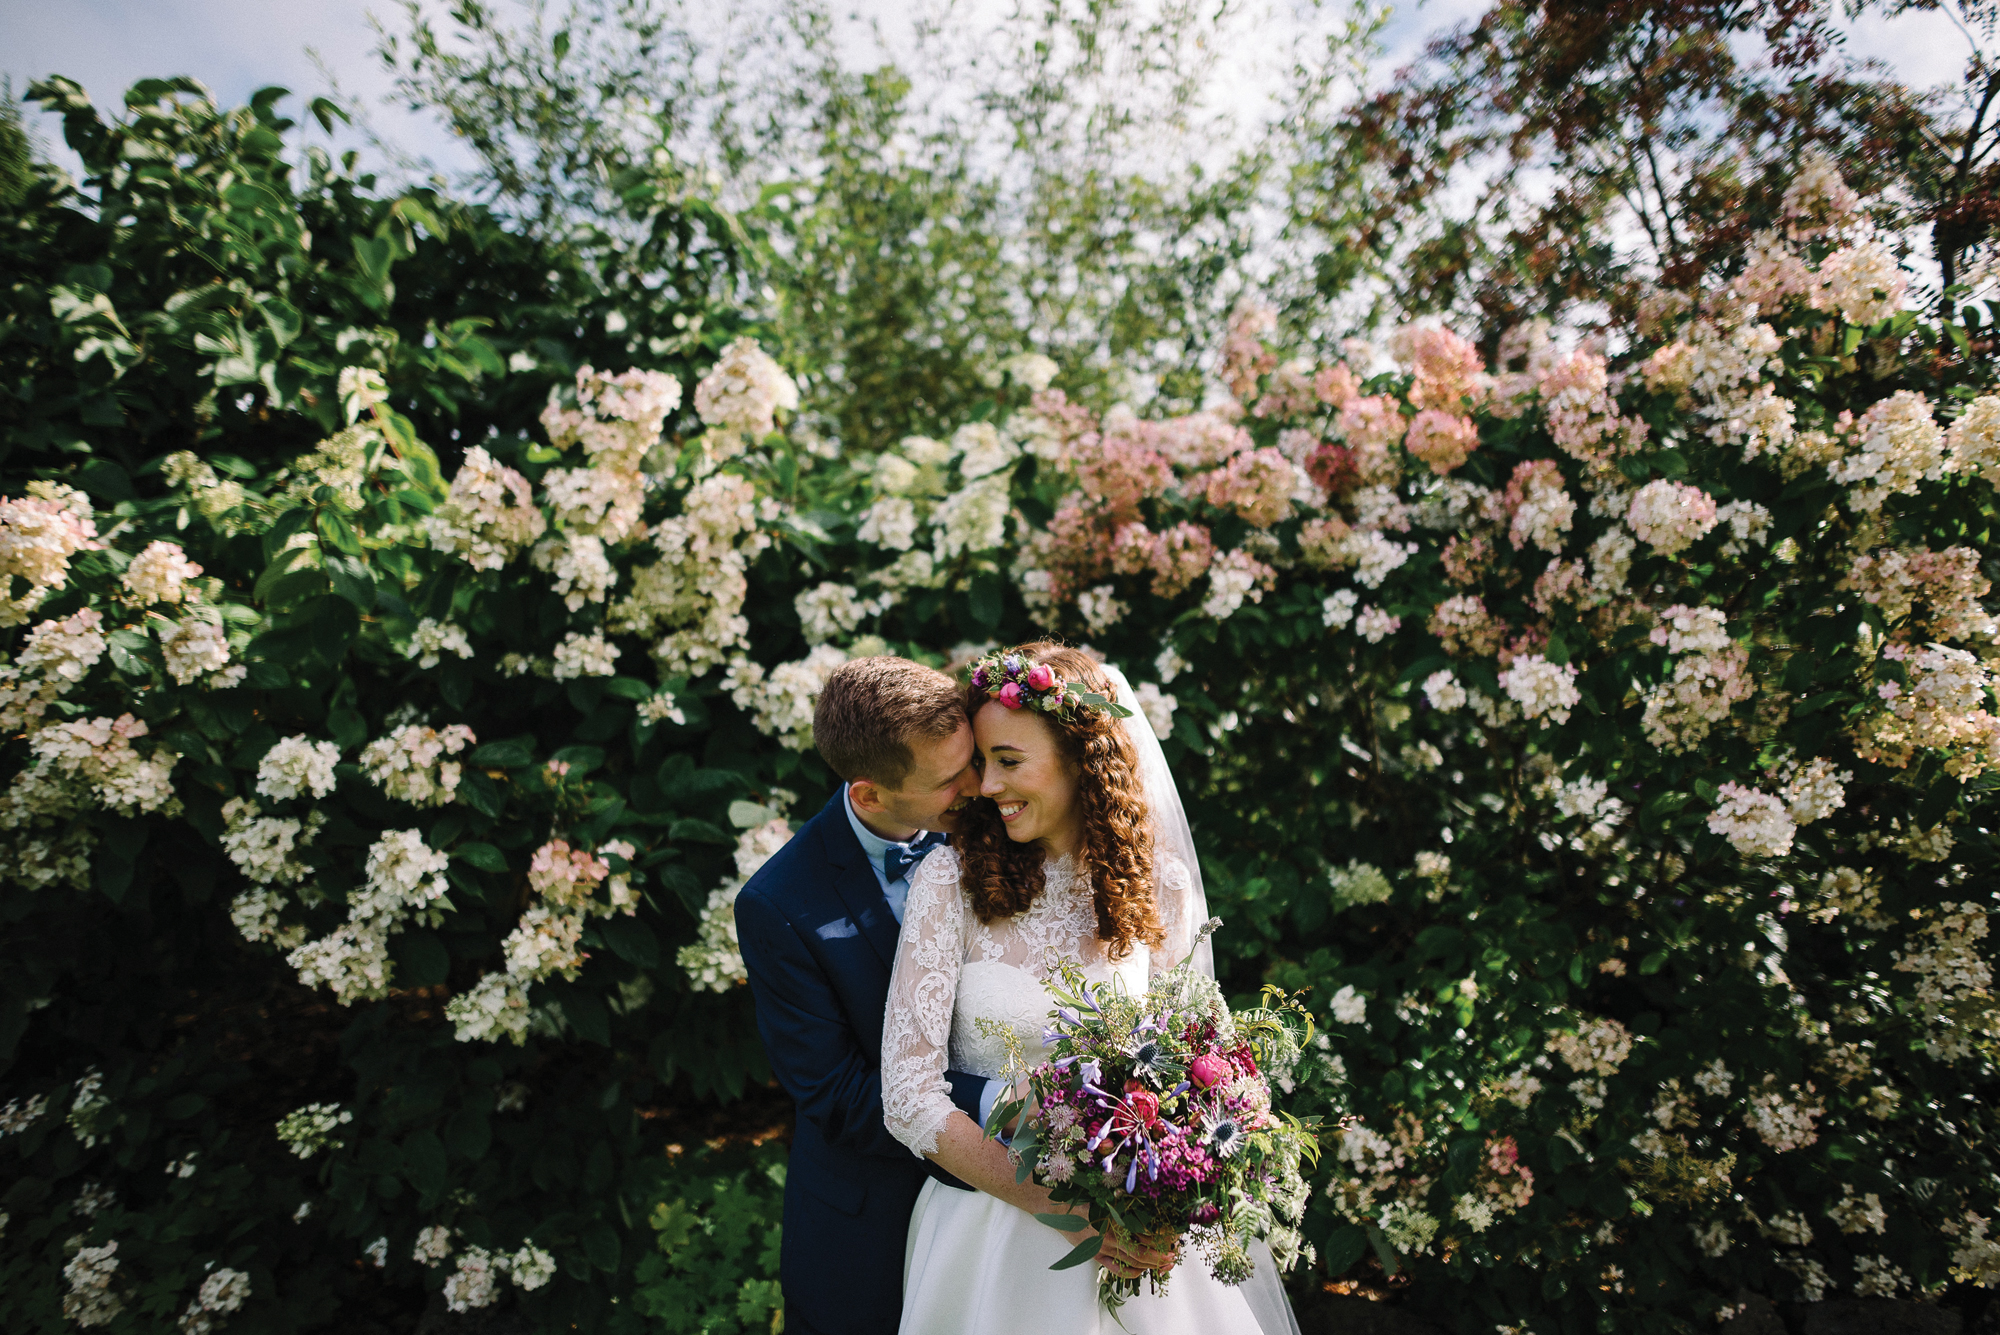 Beautiful Blooms ….  Botanical beauty adds wow factor to any wedding photographs. Outdoor gardens walls adds new heights of beauty to your day.  Image Credit   Epic Love